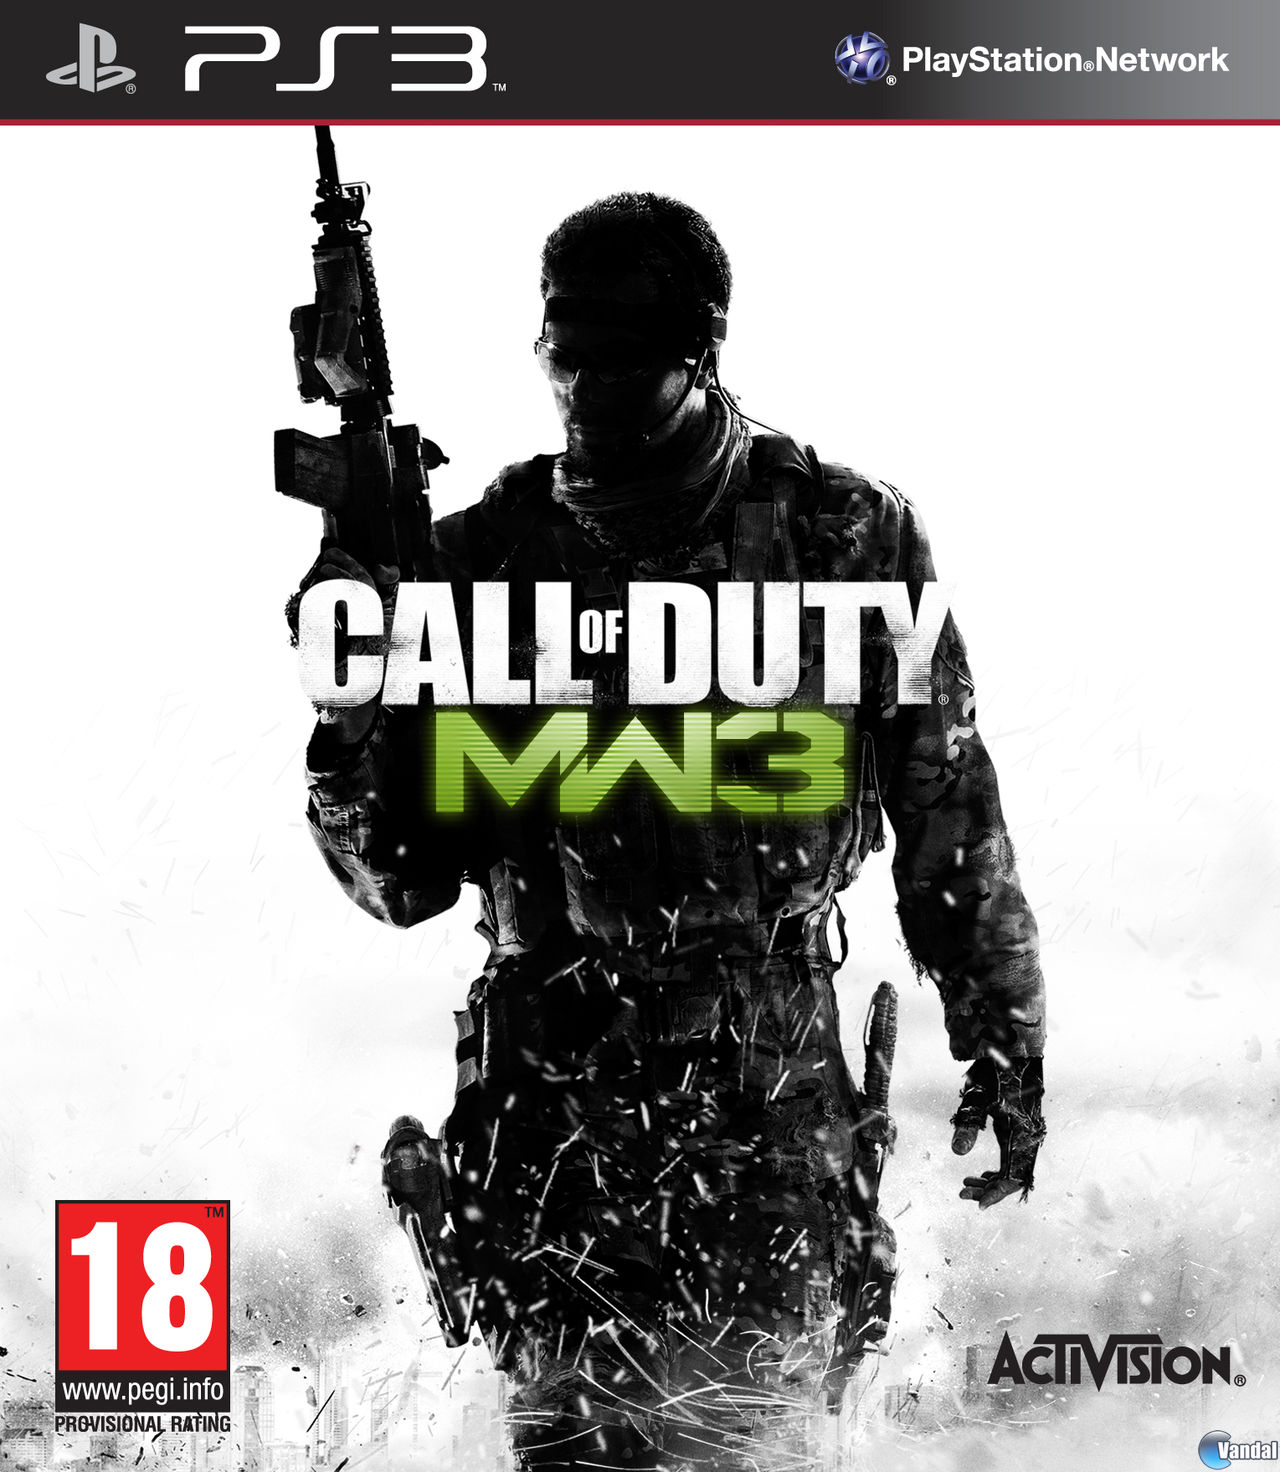 Imagen 7 de Call of Duty: Modern Warfare 3 para PlayStation 3